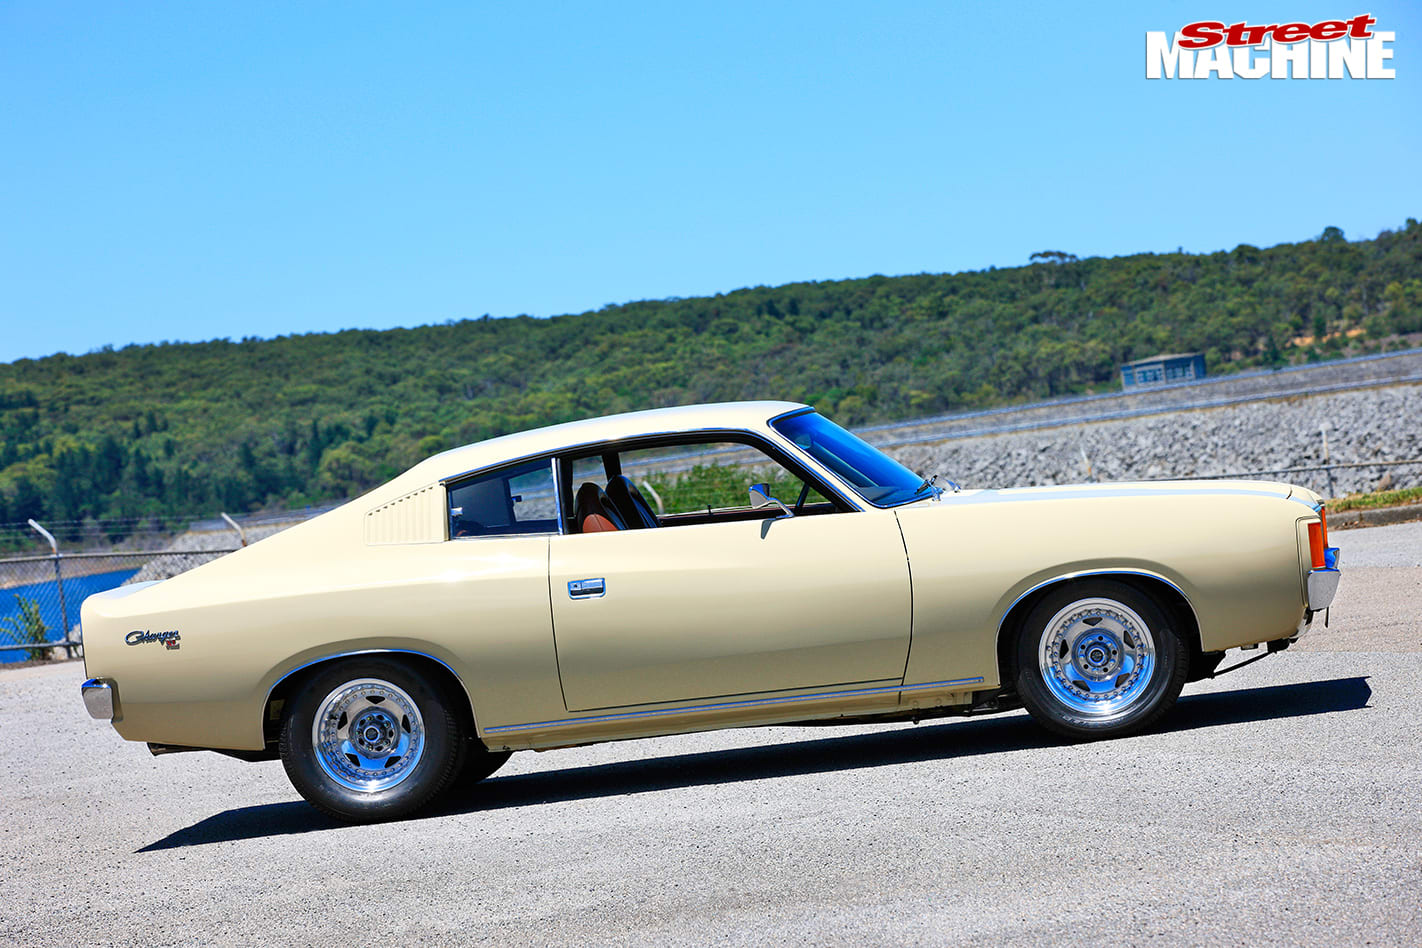 Chrysler -charger -sideview -2